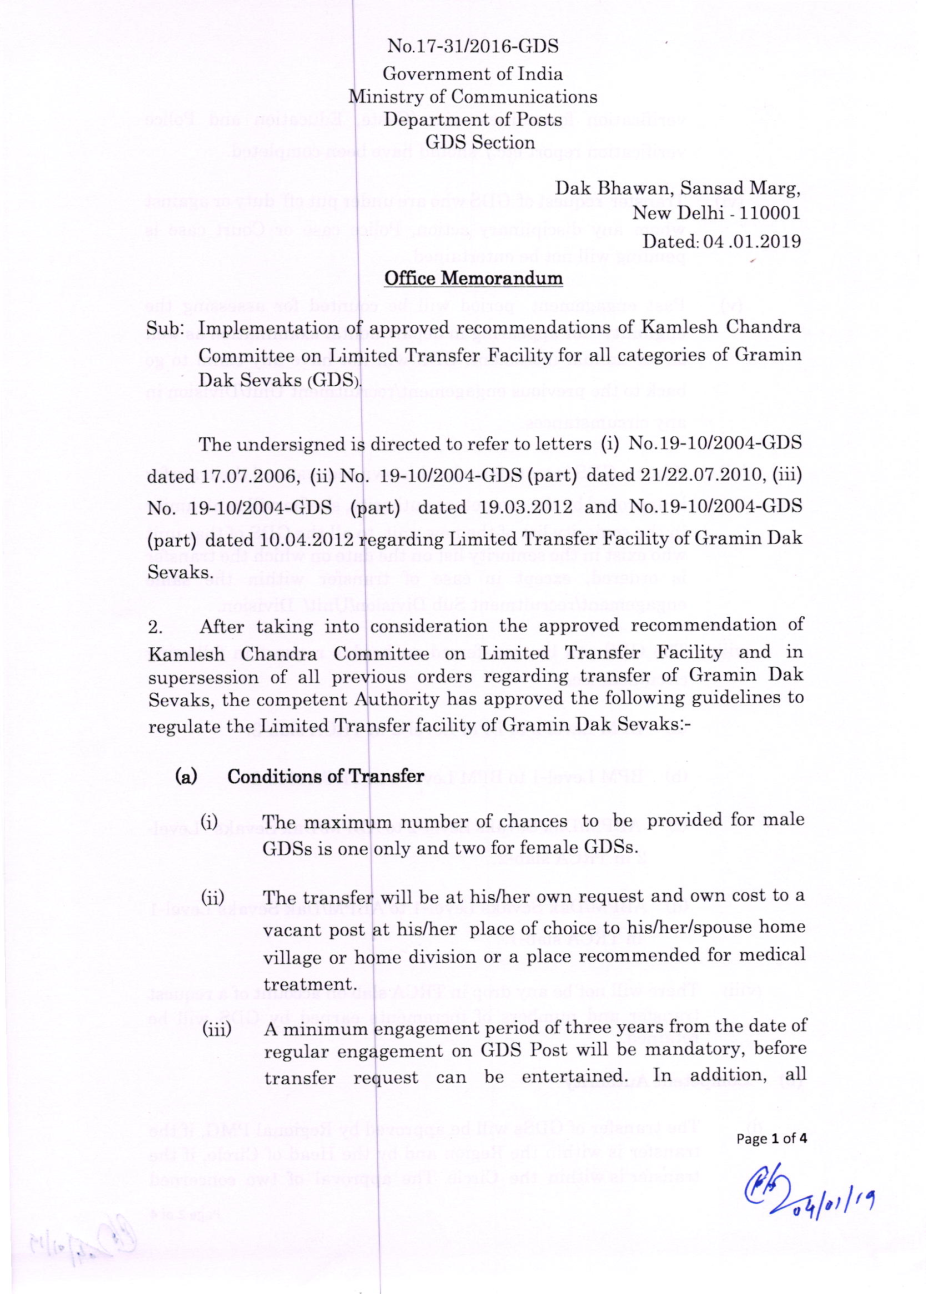 Important DOP Order for GDS in c/w Implementation of one-man committee recommendations [Collections]